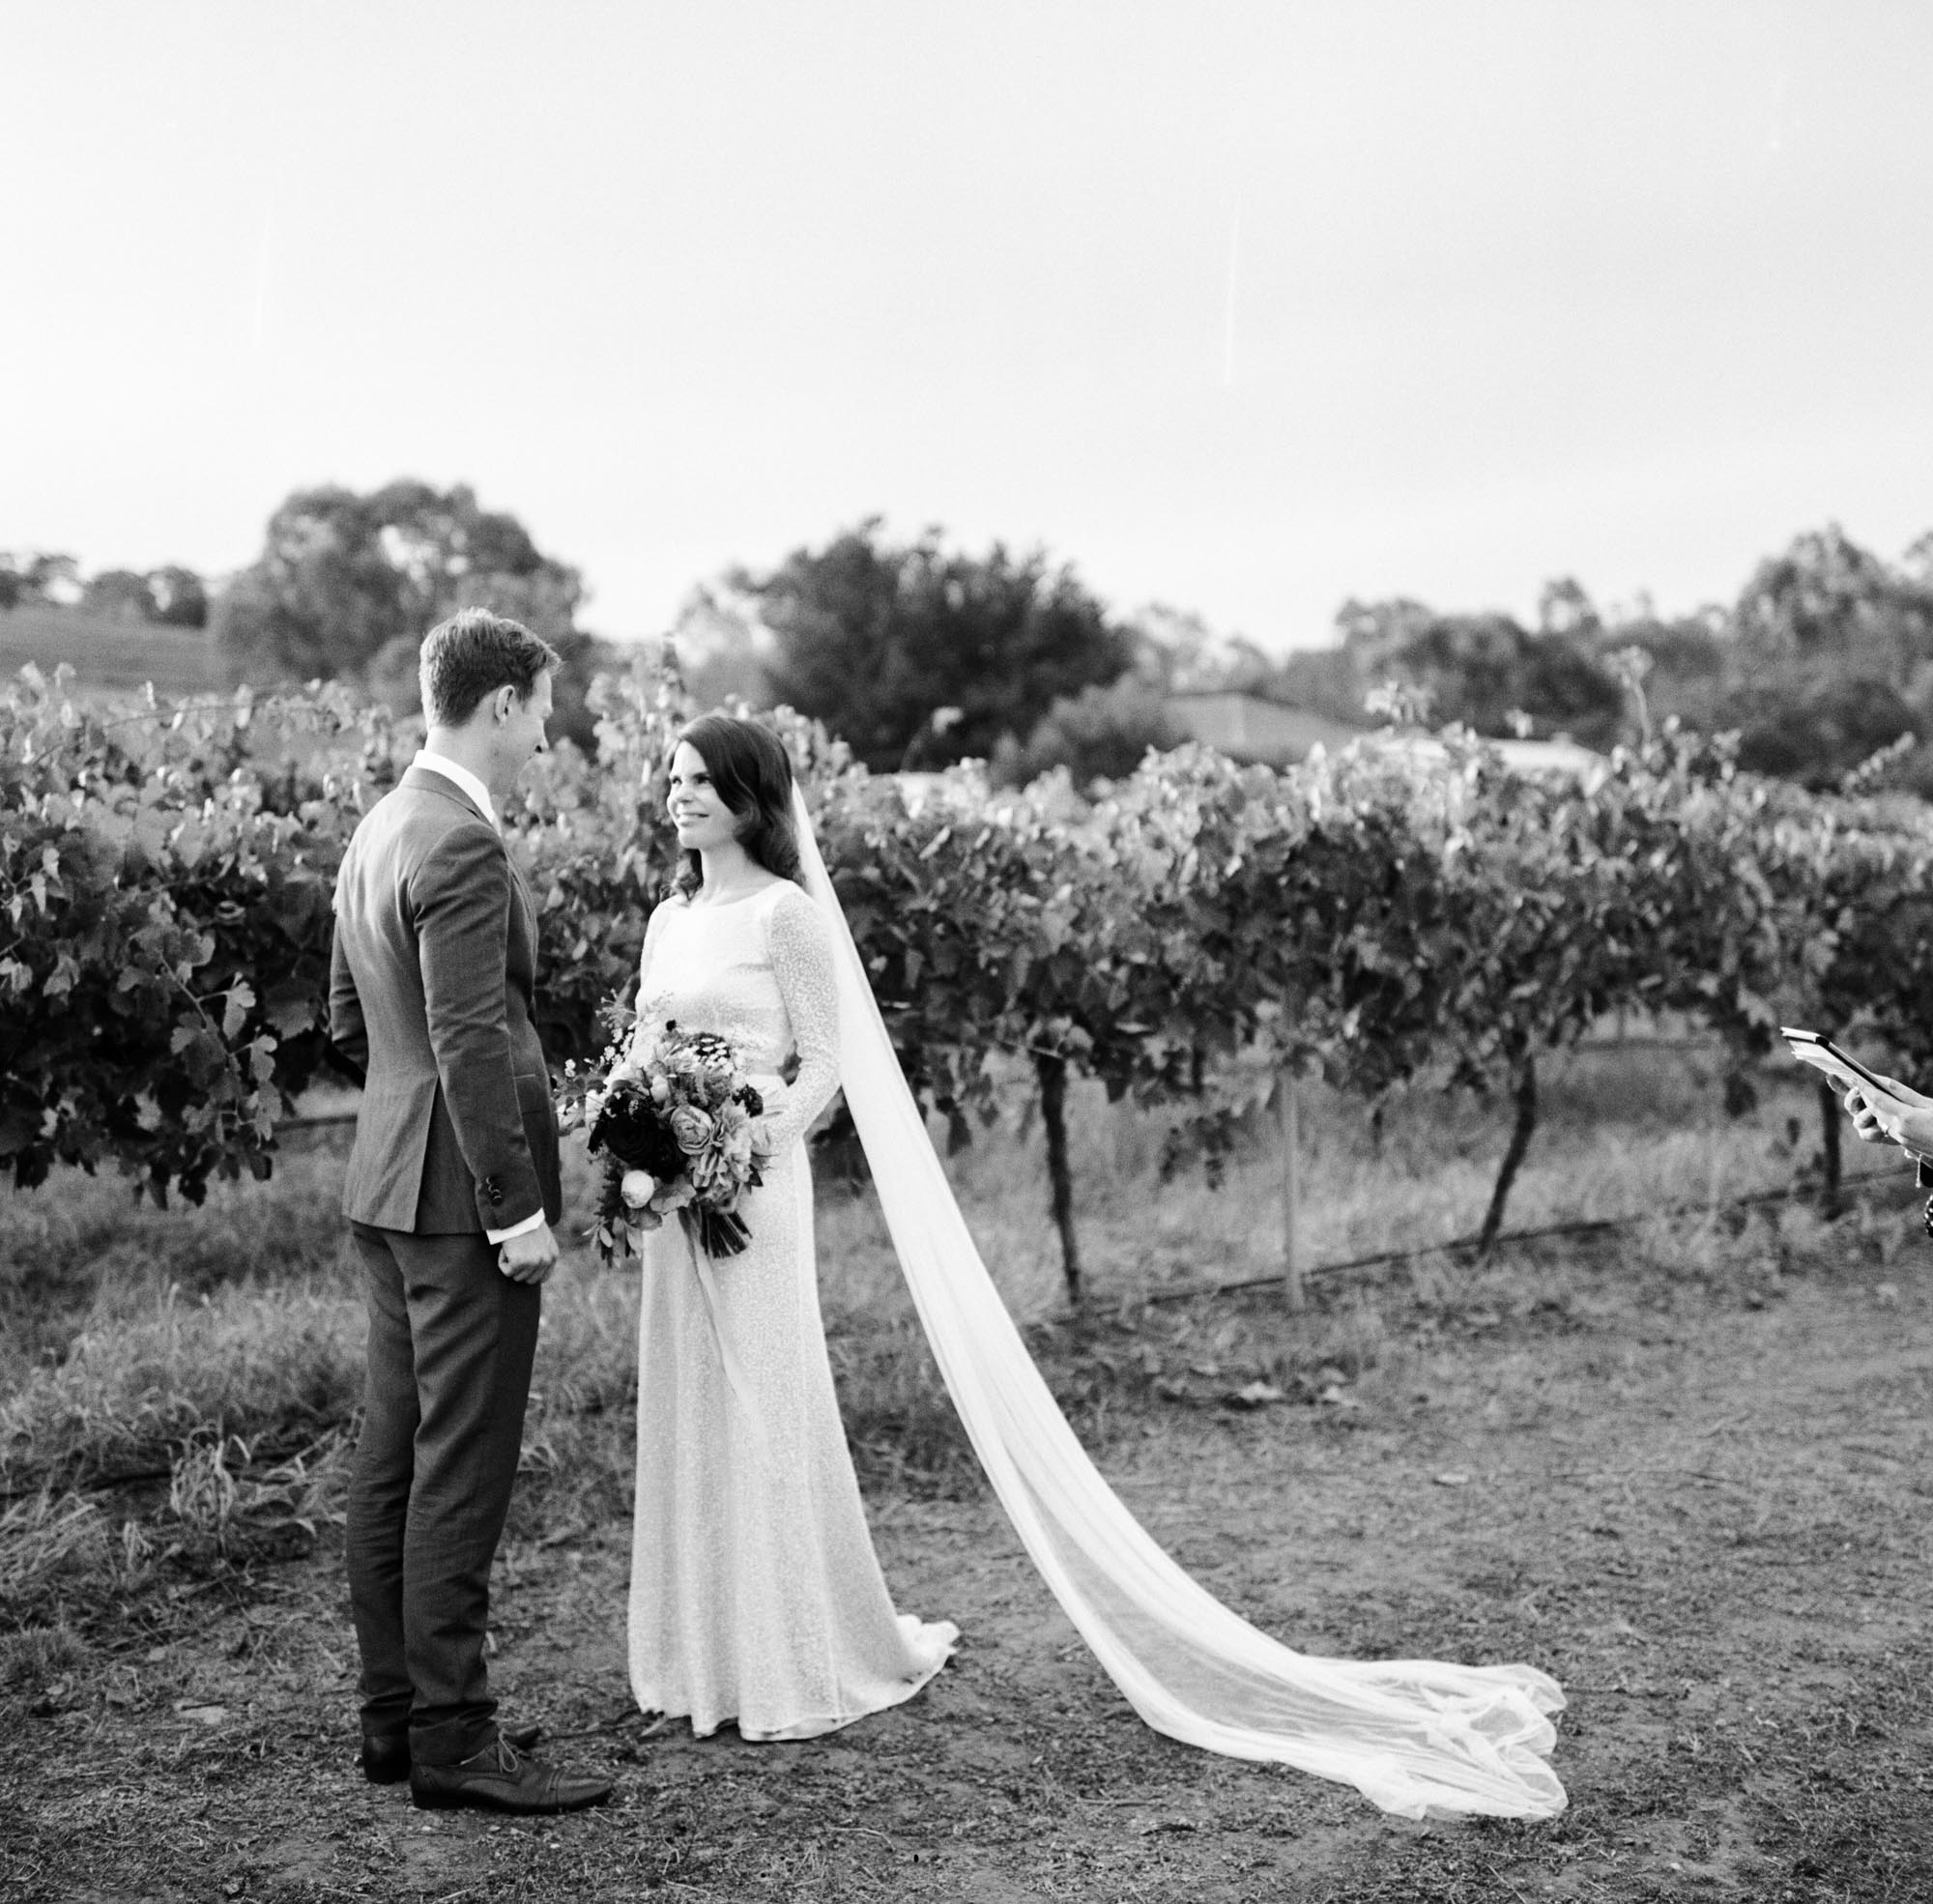 Hentley-Farm-wedding-photography-023.jpg